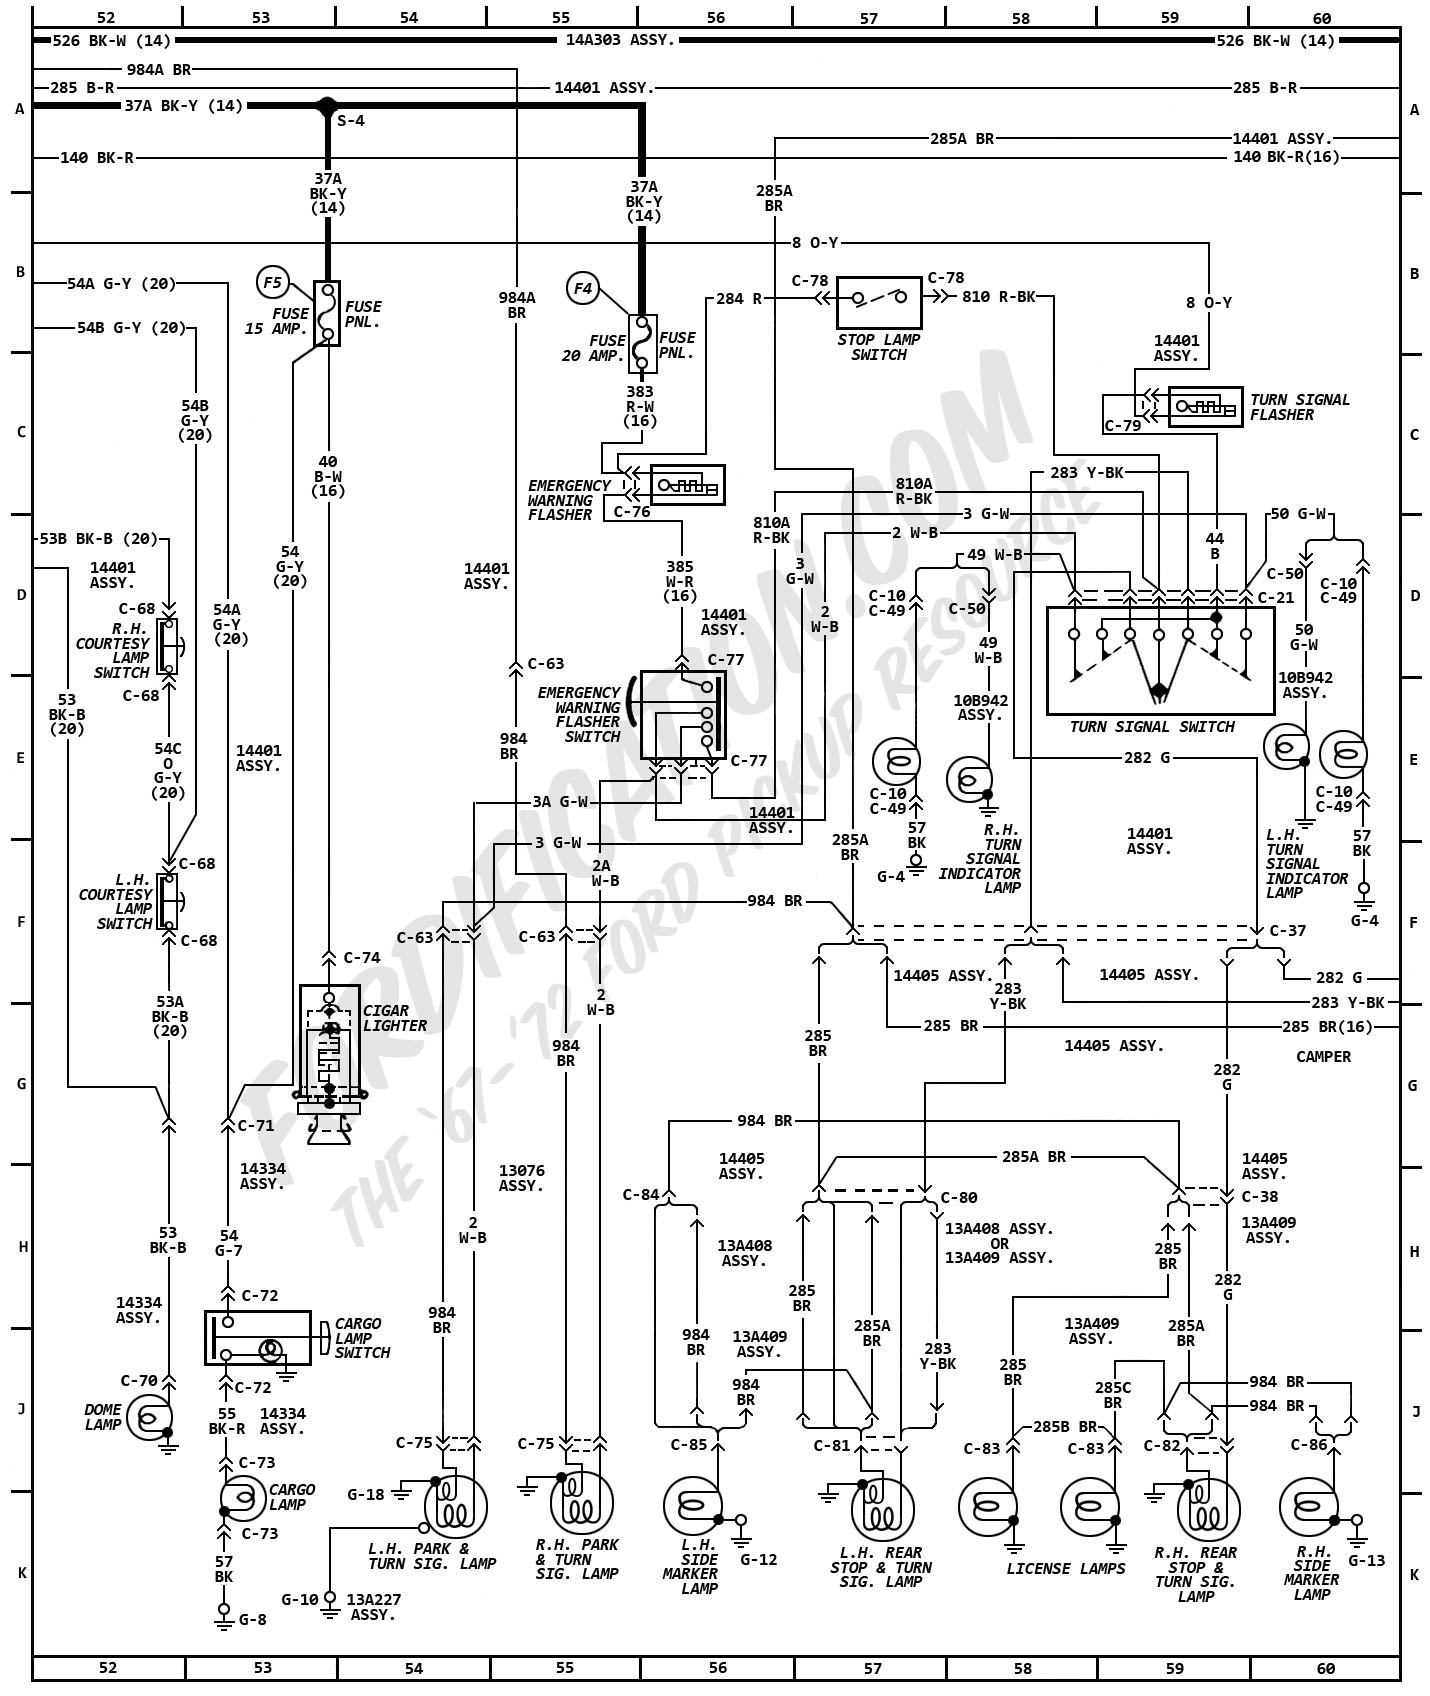 [SCHEMATICS_44OR]  95B4C1 Diagram For Ignition Switch Wiring Ford Truck | Wiring Library | Ford Ignition Switch Wiring |  | Wiring Library